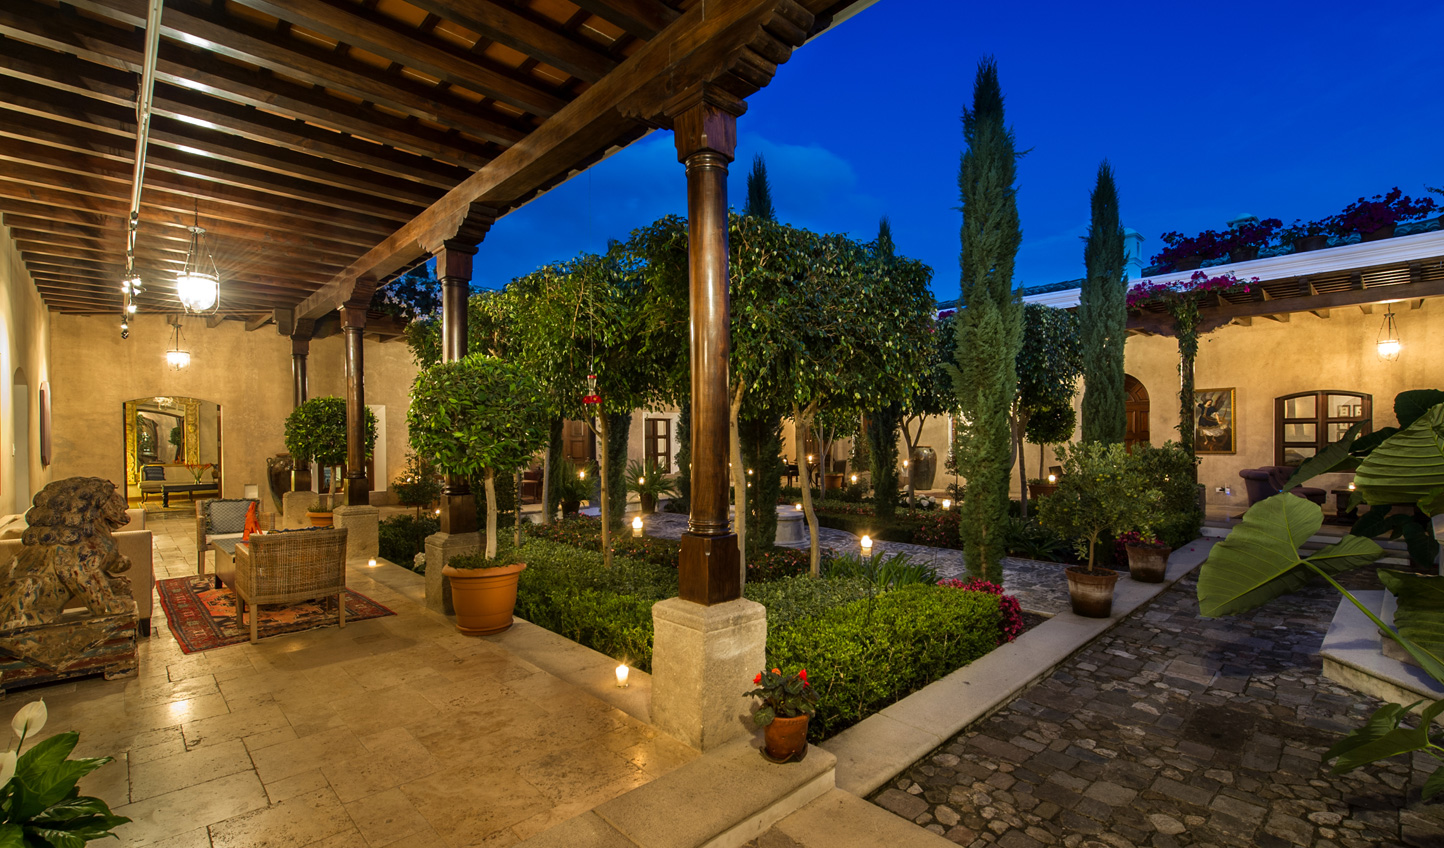 Spend your evenings relaxing in the intimacy of the courtyard